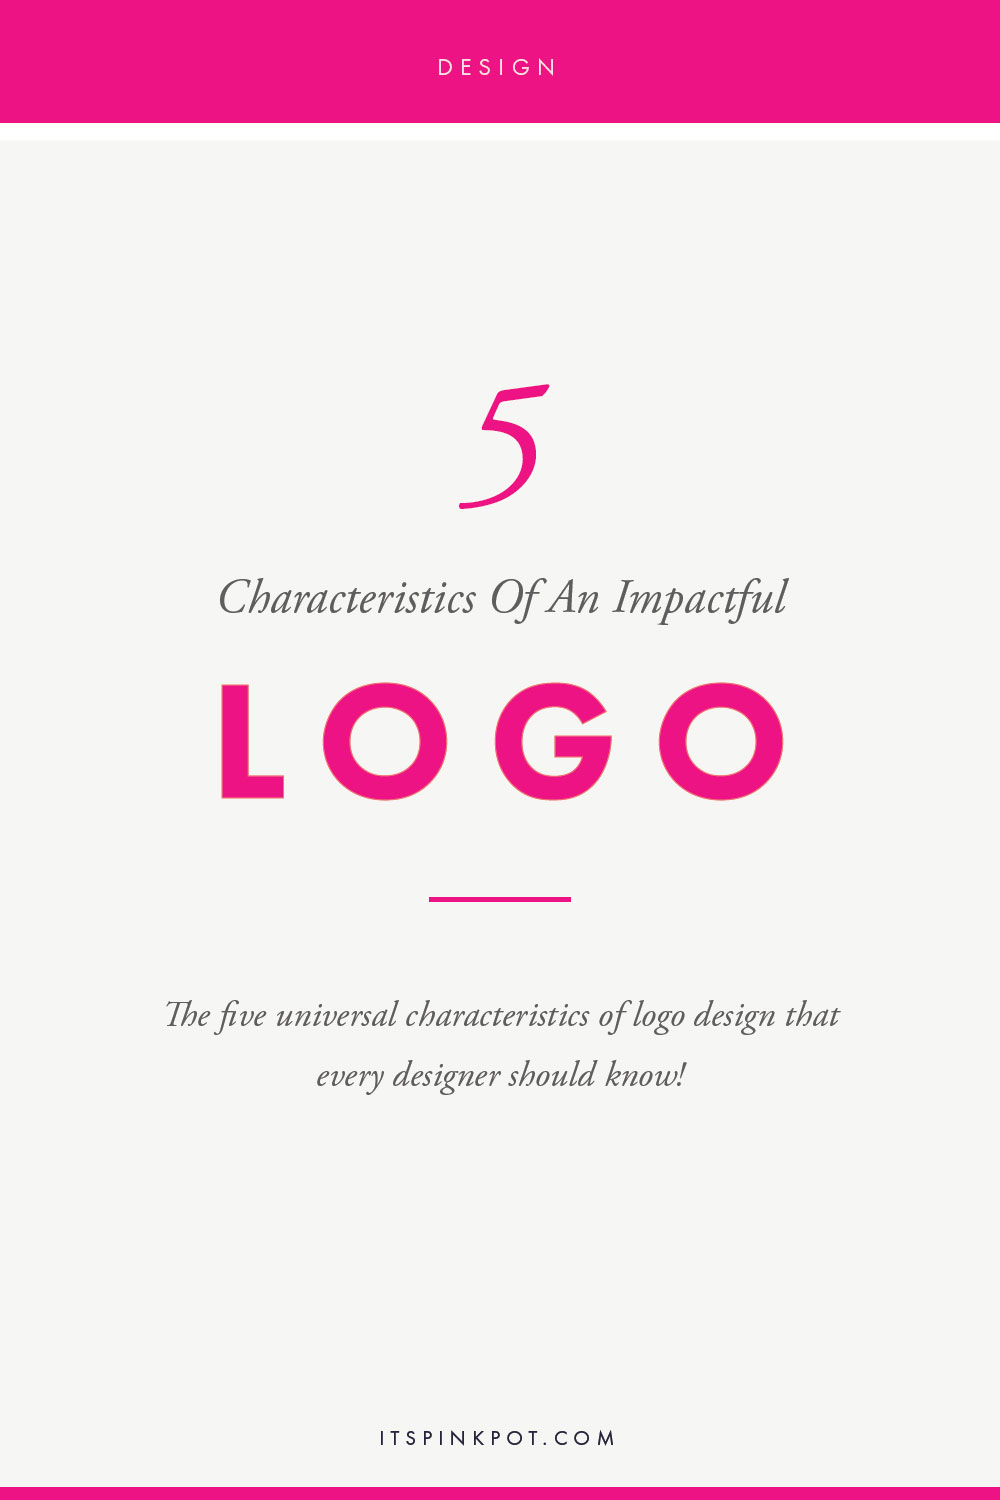 5 Universal Characteristics of an impactful logo design every designer should know. Guest post for Creative Market - PinkPot